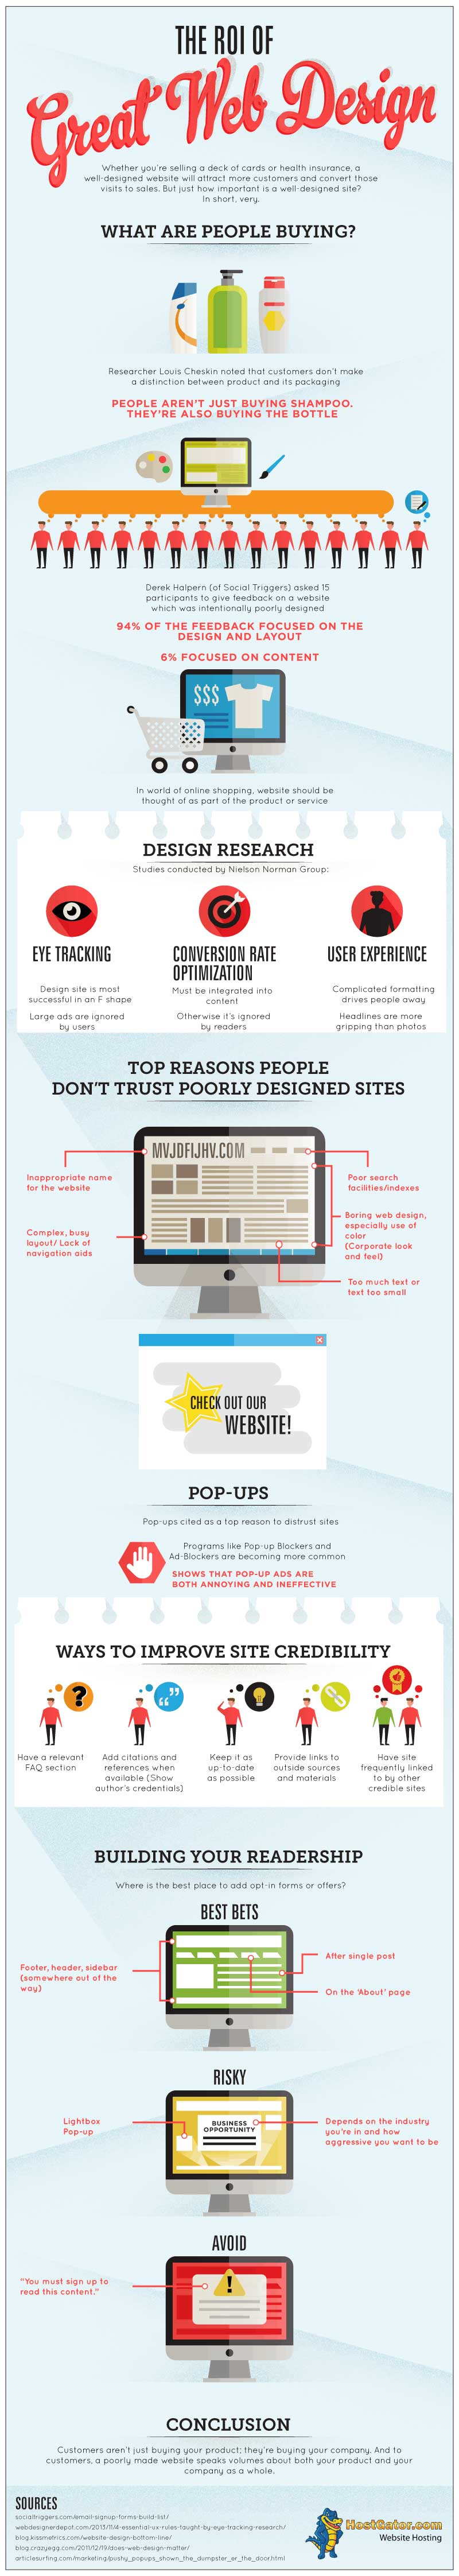 great web design infographic